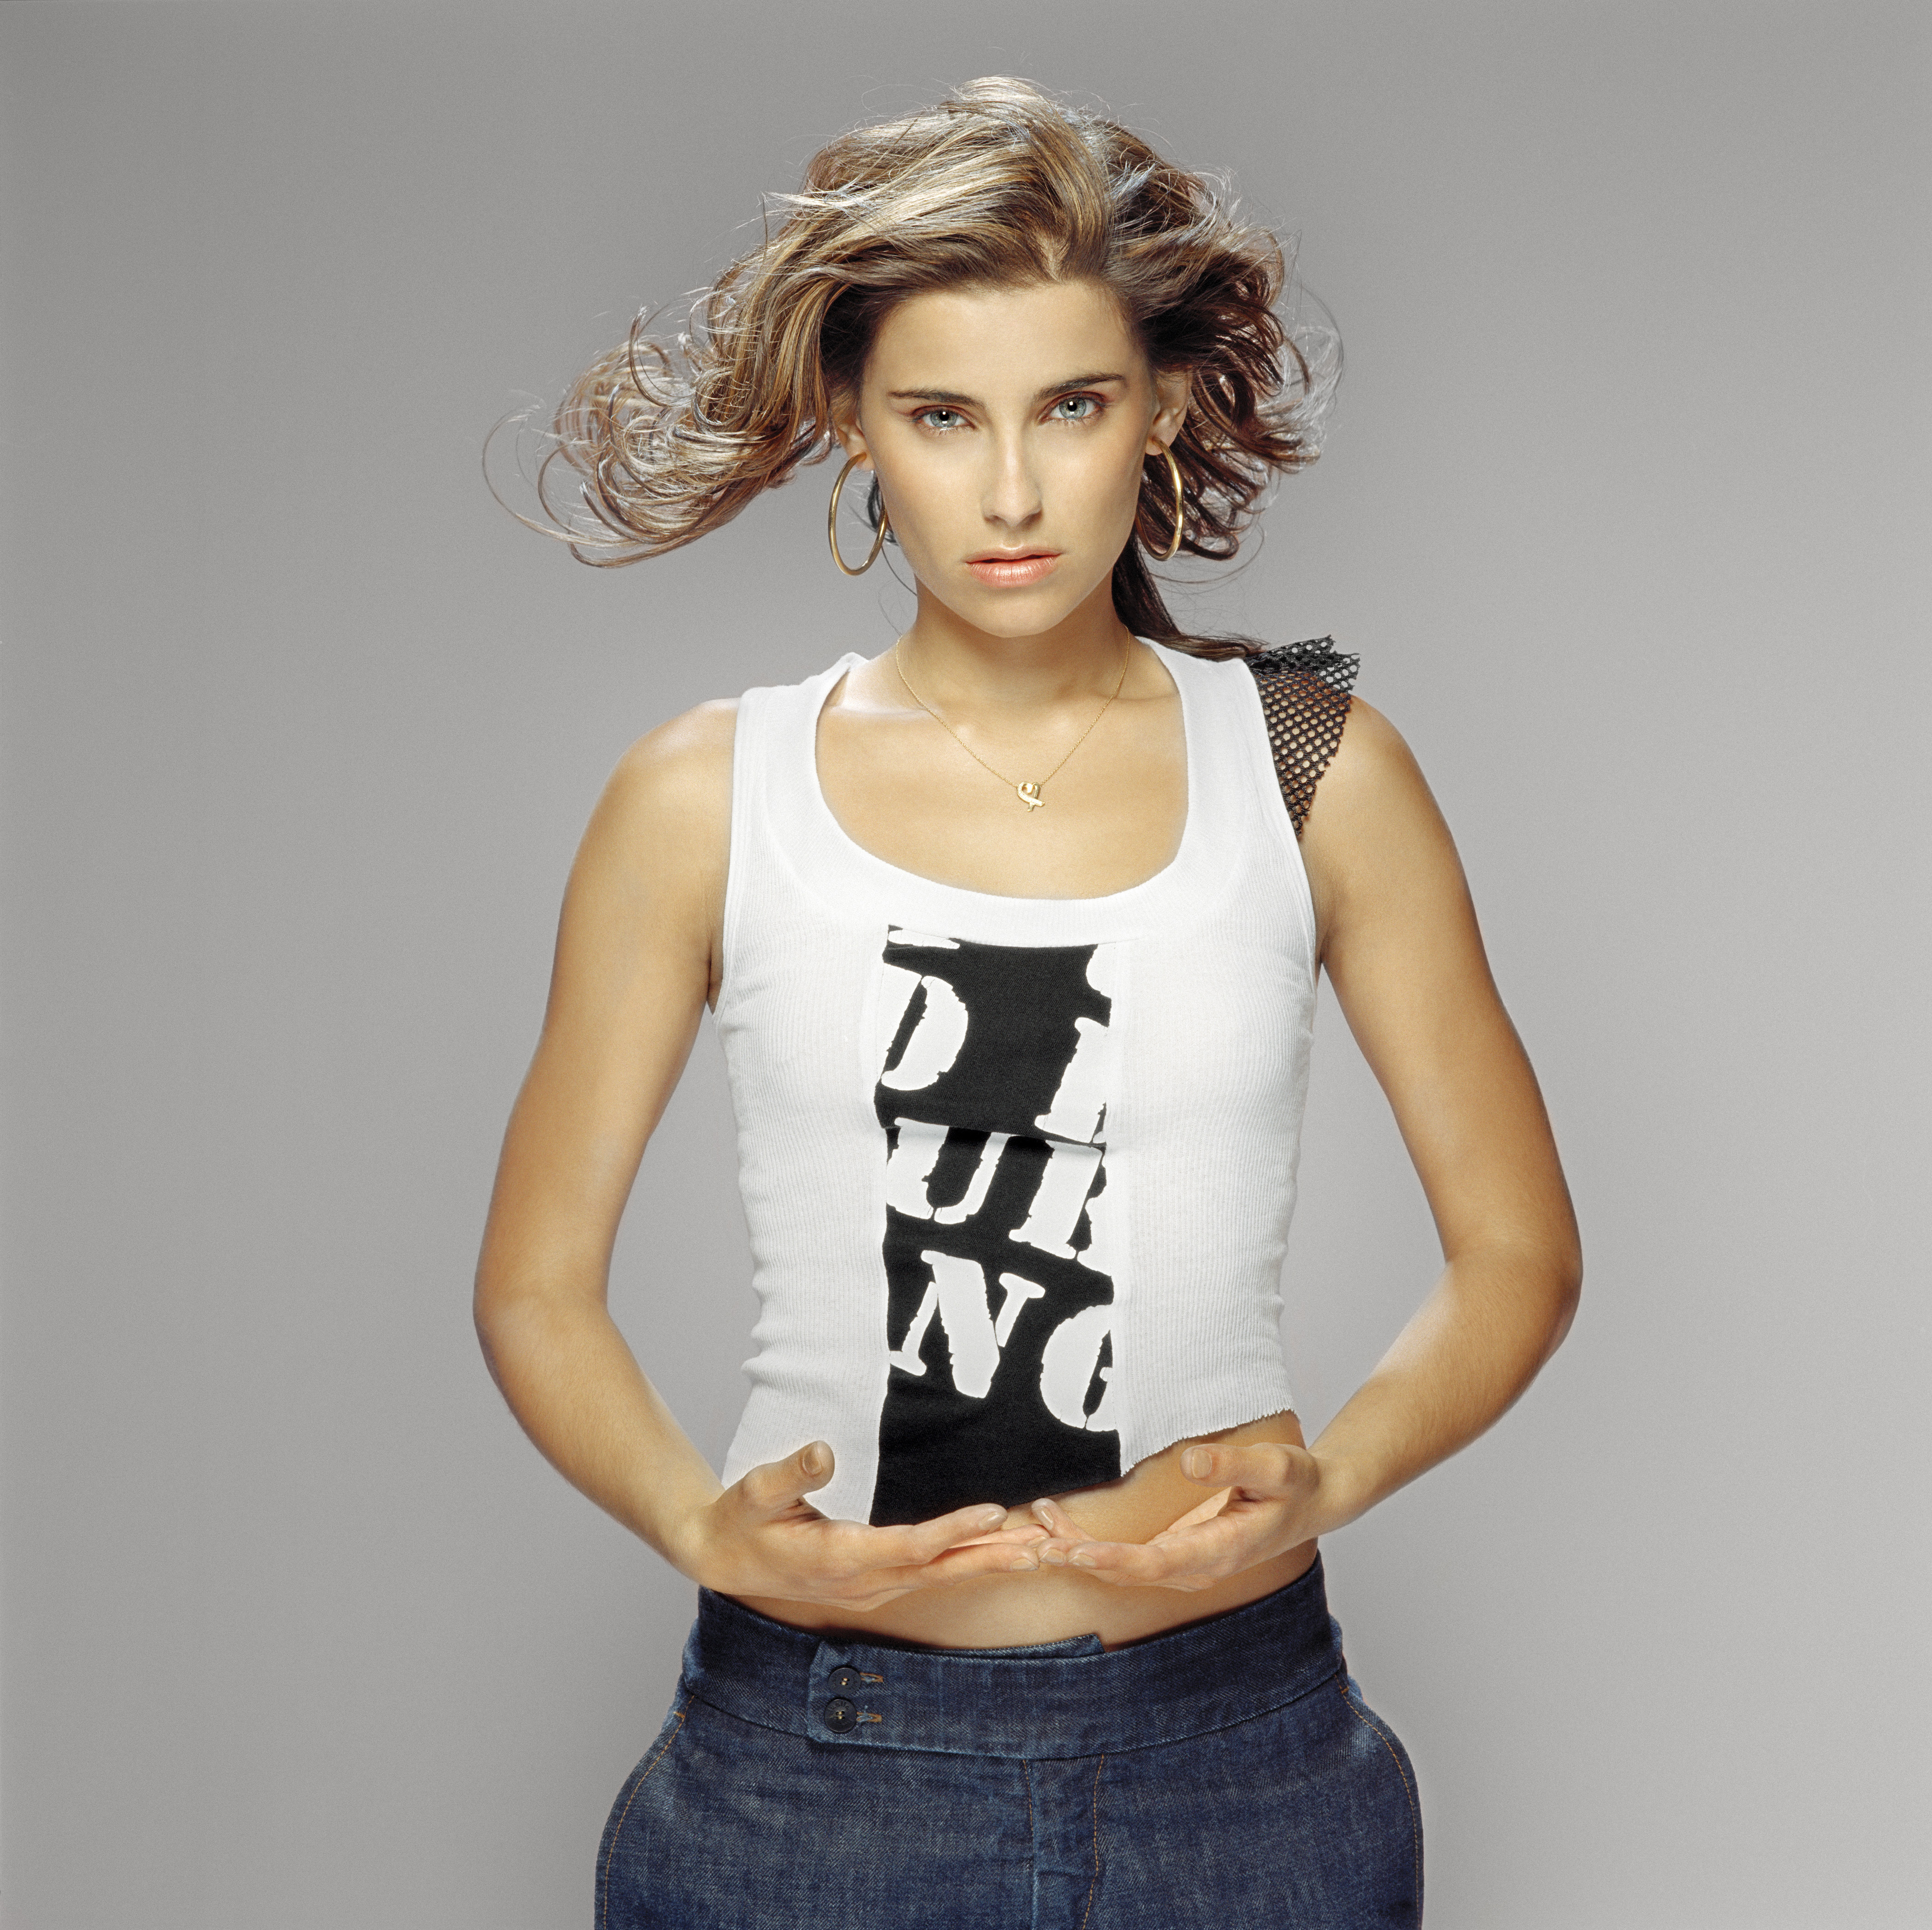 Nelly Furtado - Rolling Stone (August 23, 2002) HQ